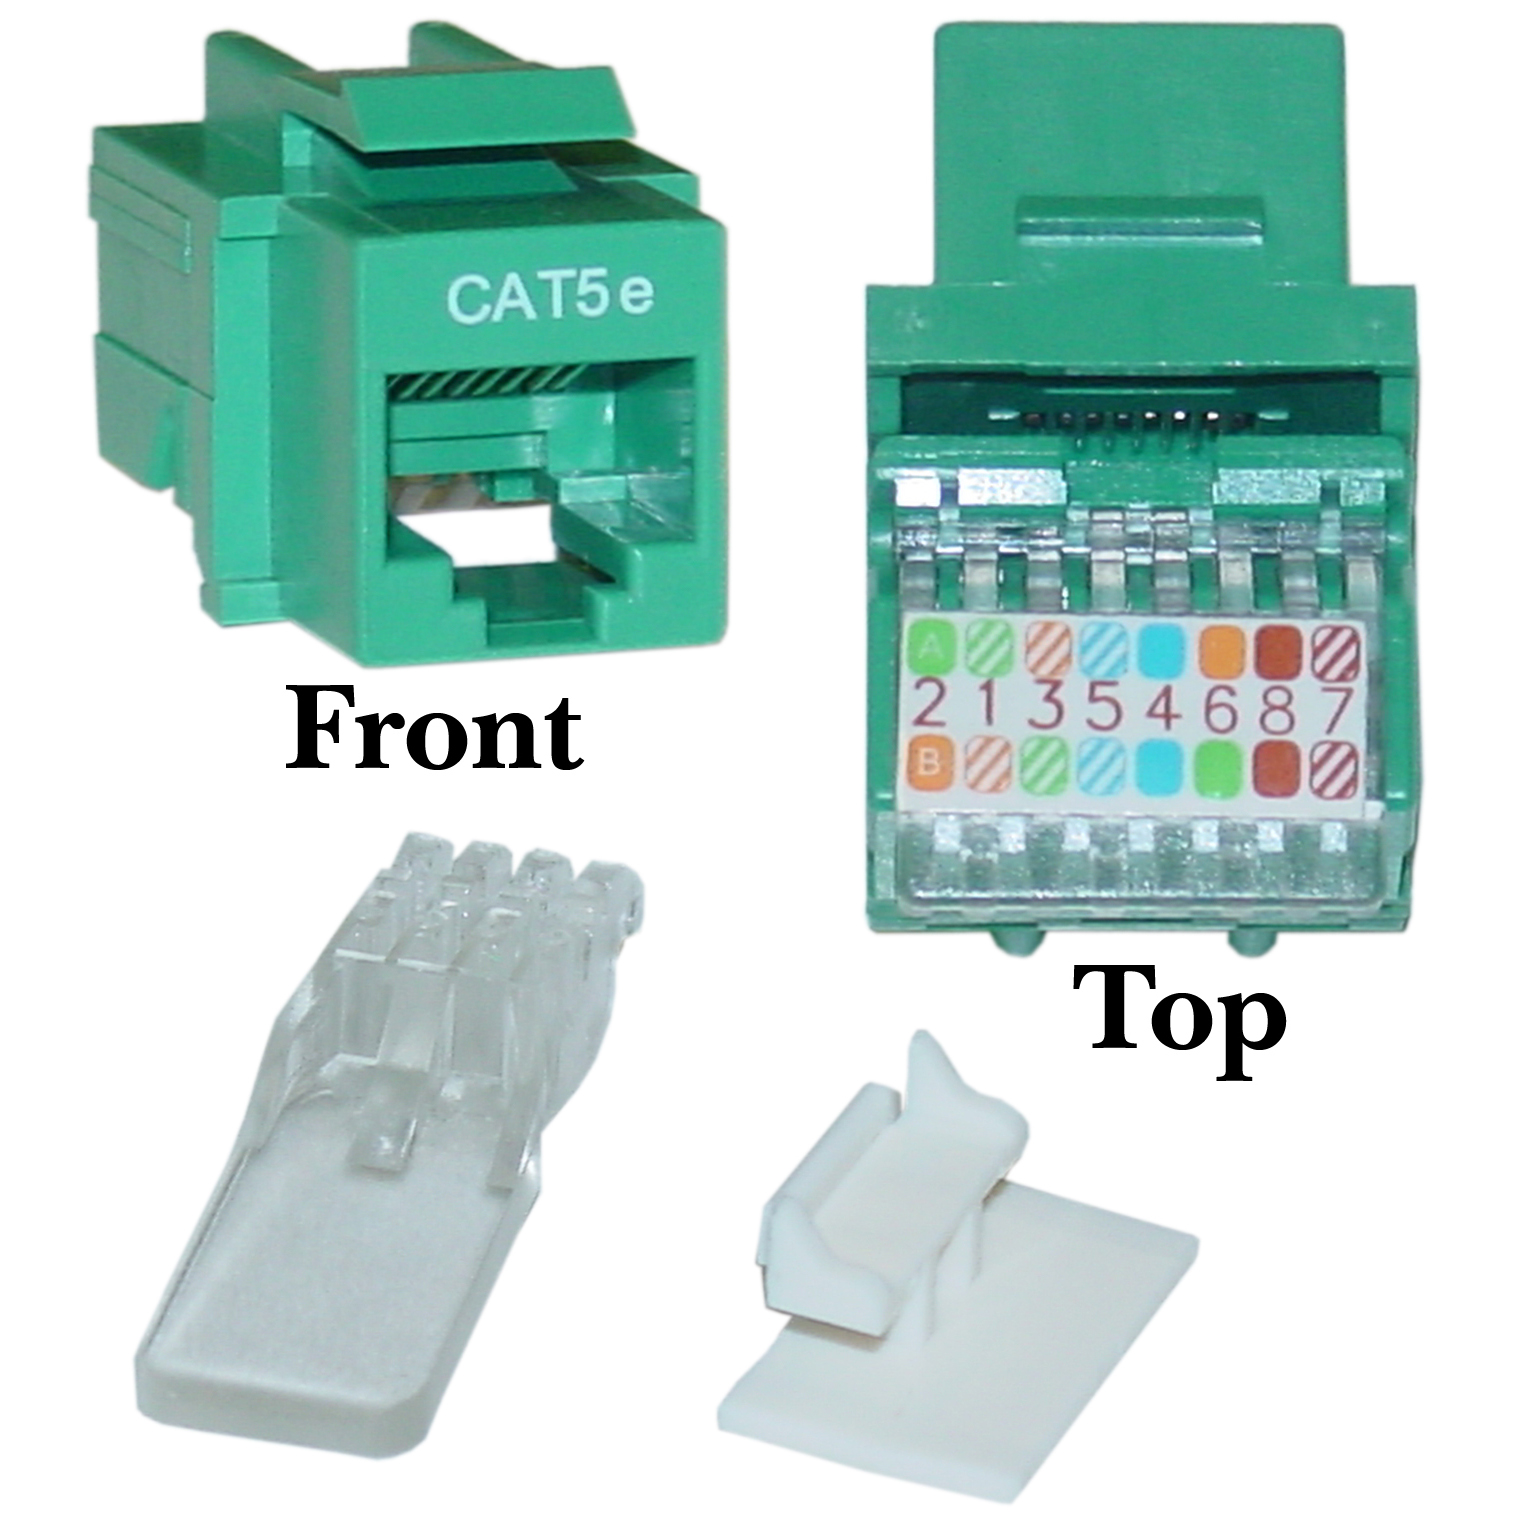 Green Cat5e RJ45 Keystone Jack, Toolless